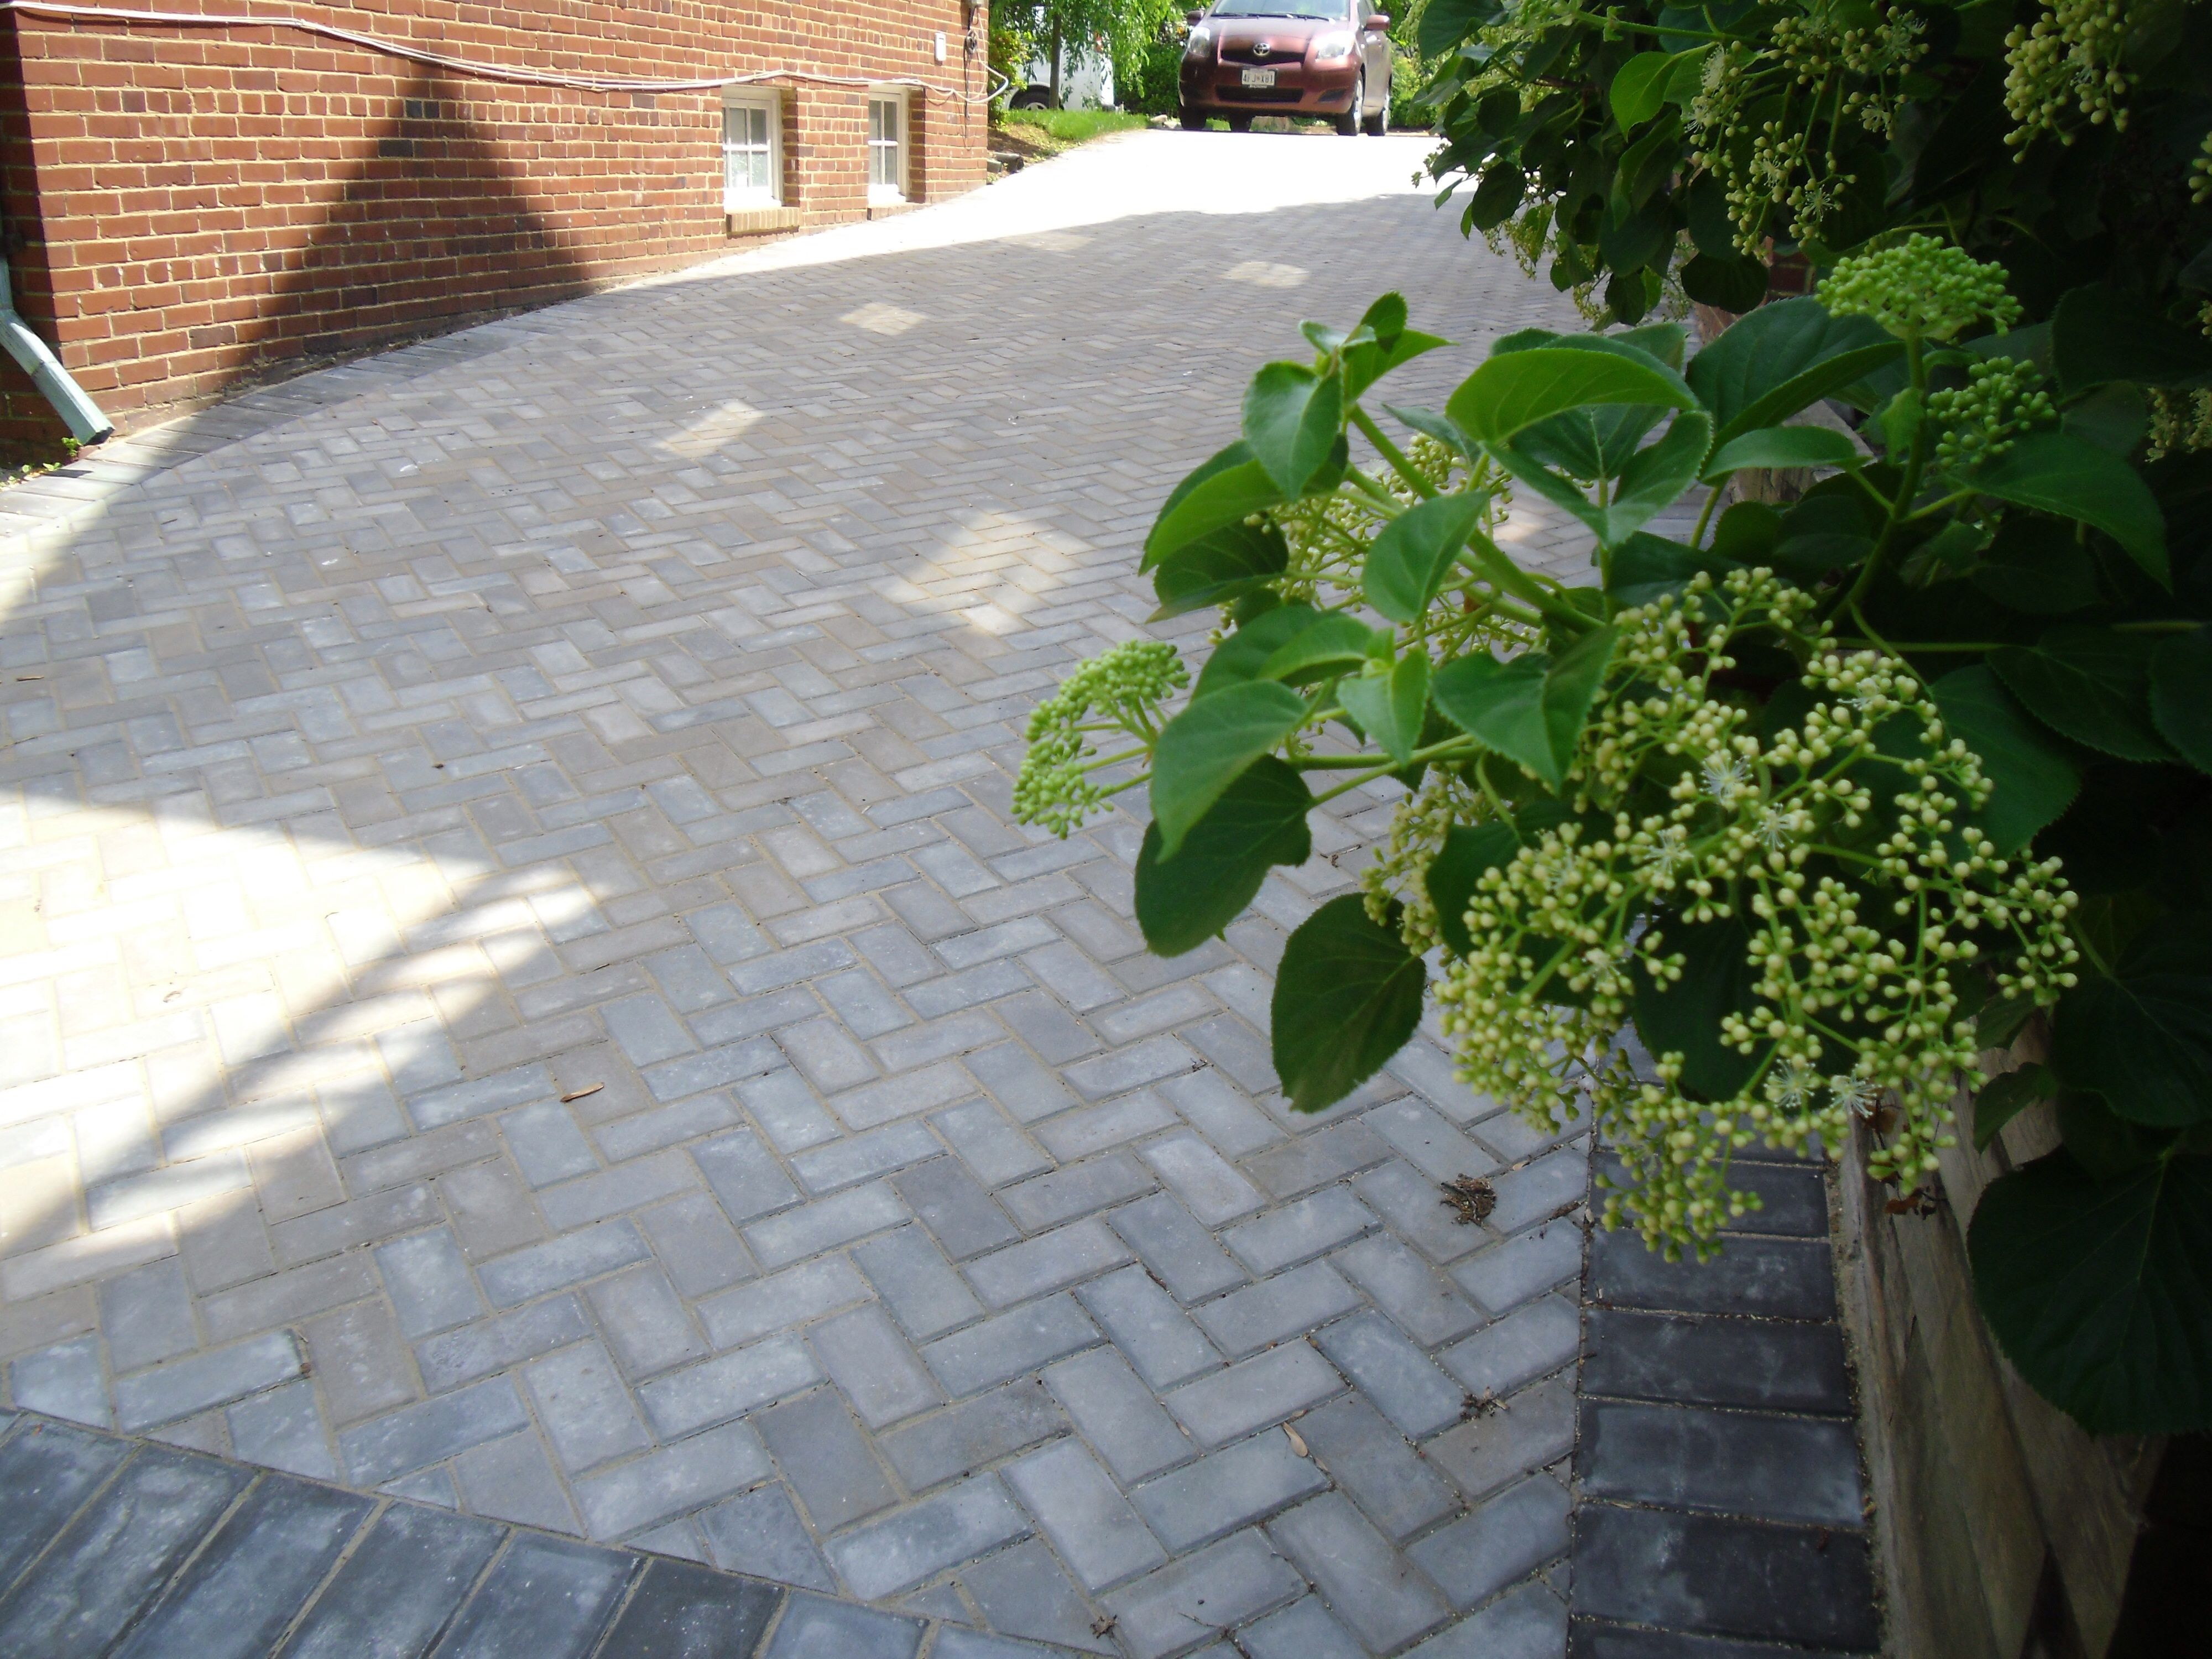 Classic Paver Driveway Traditional Herringbone Pattern With A Soldier Course Natural Landscaping Paving Stone Patio Professional Landscaping